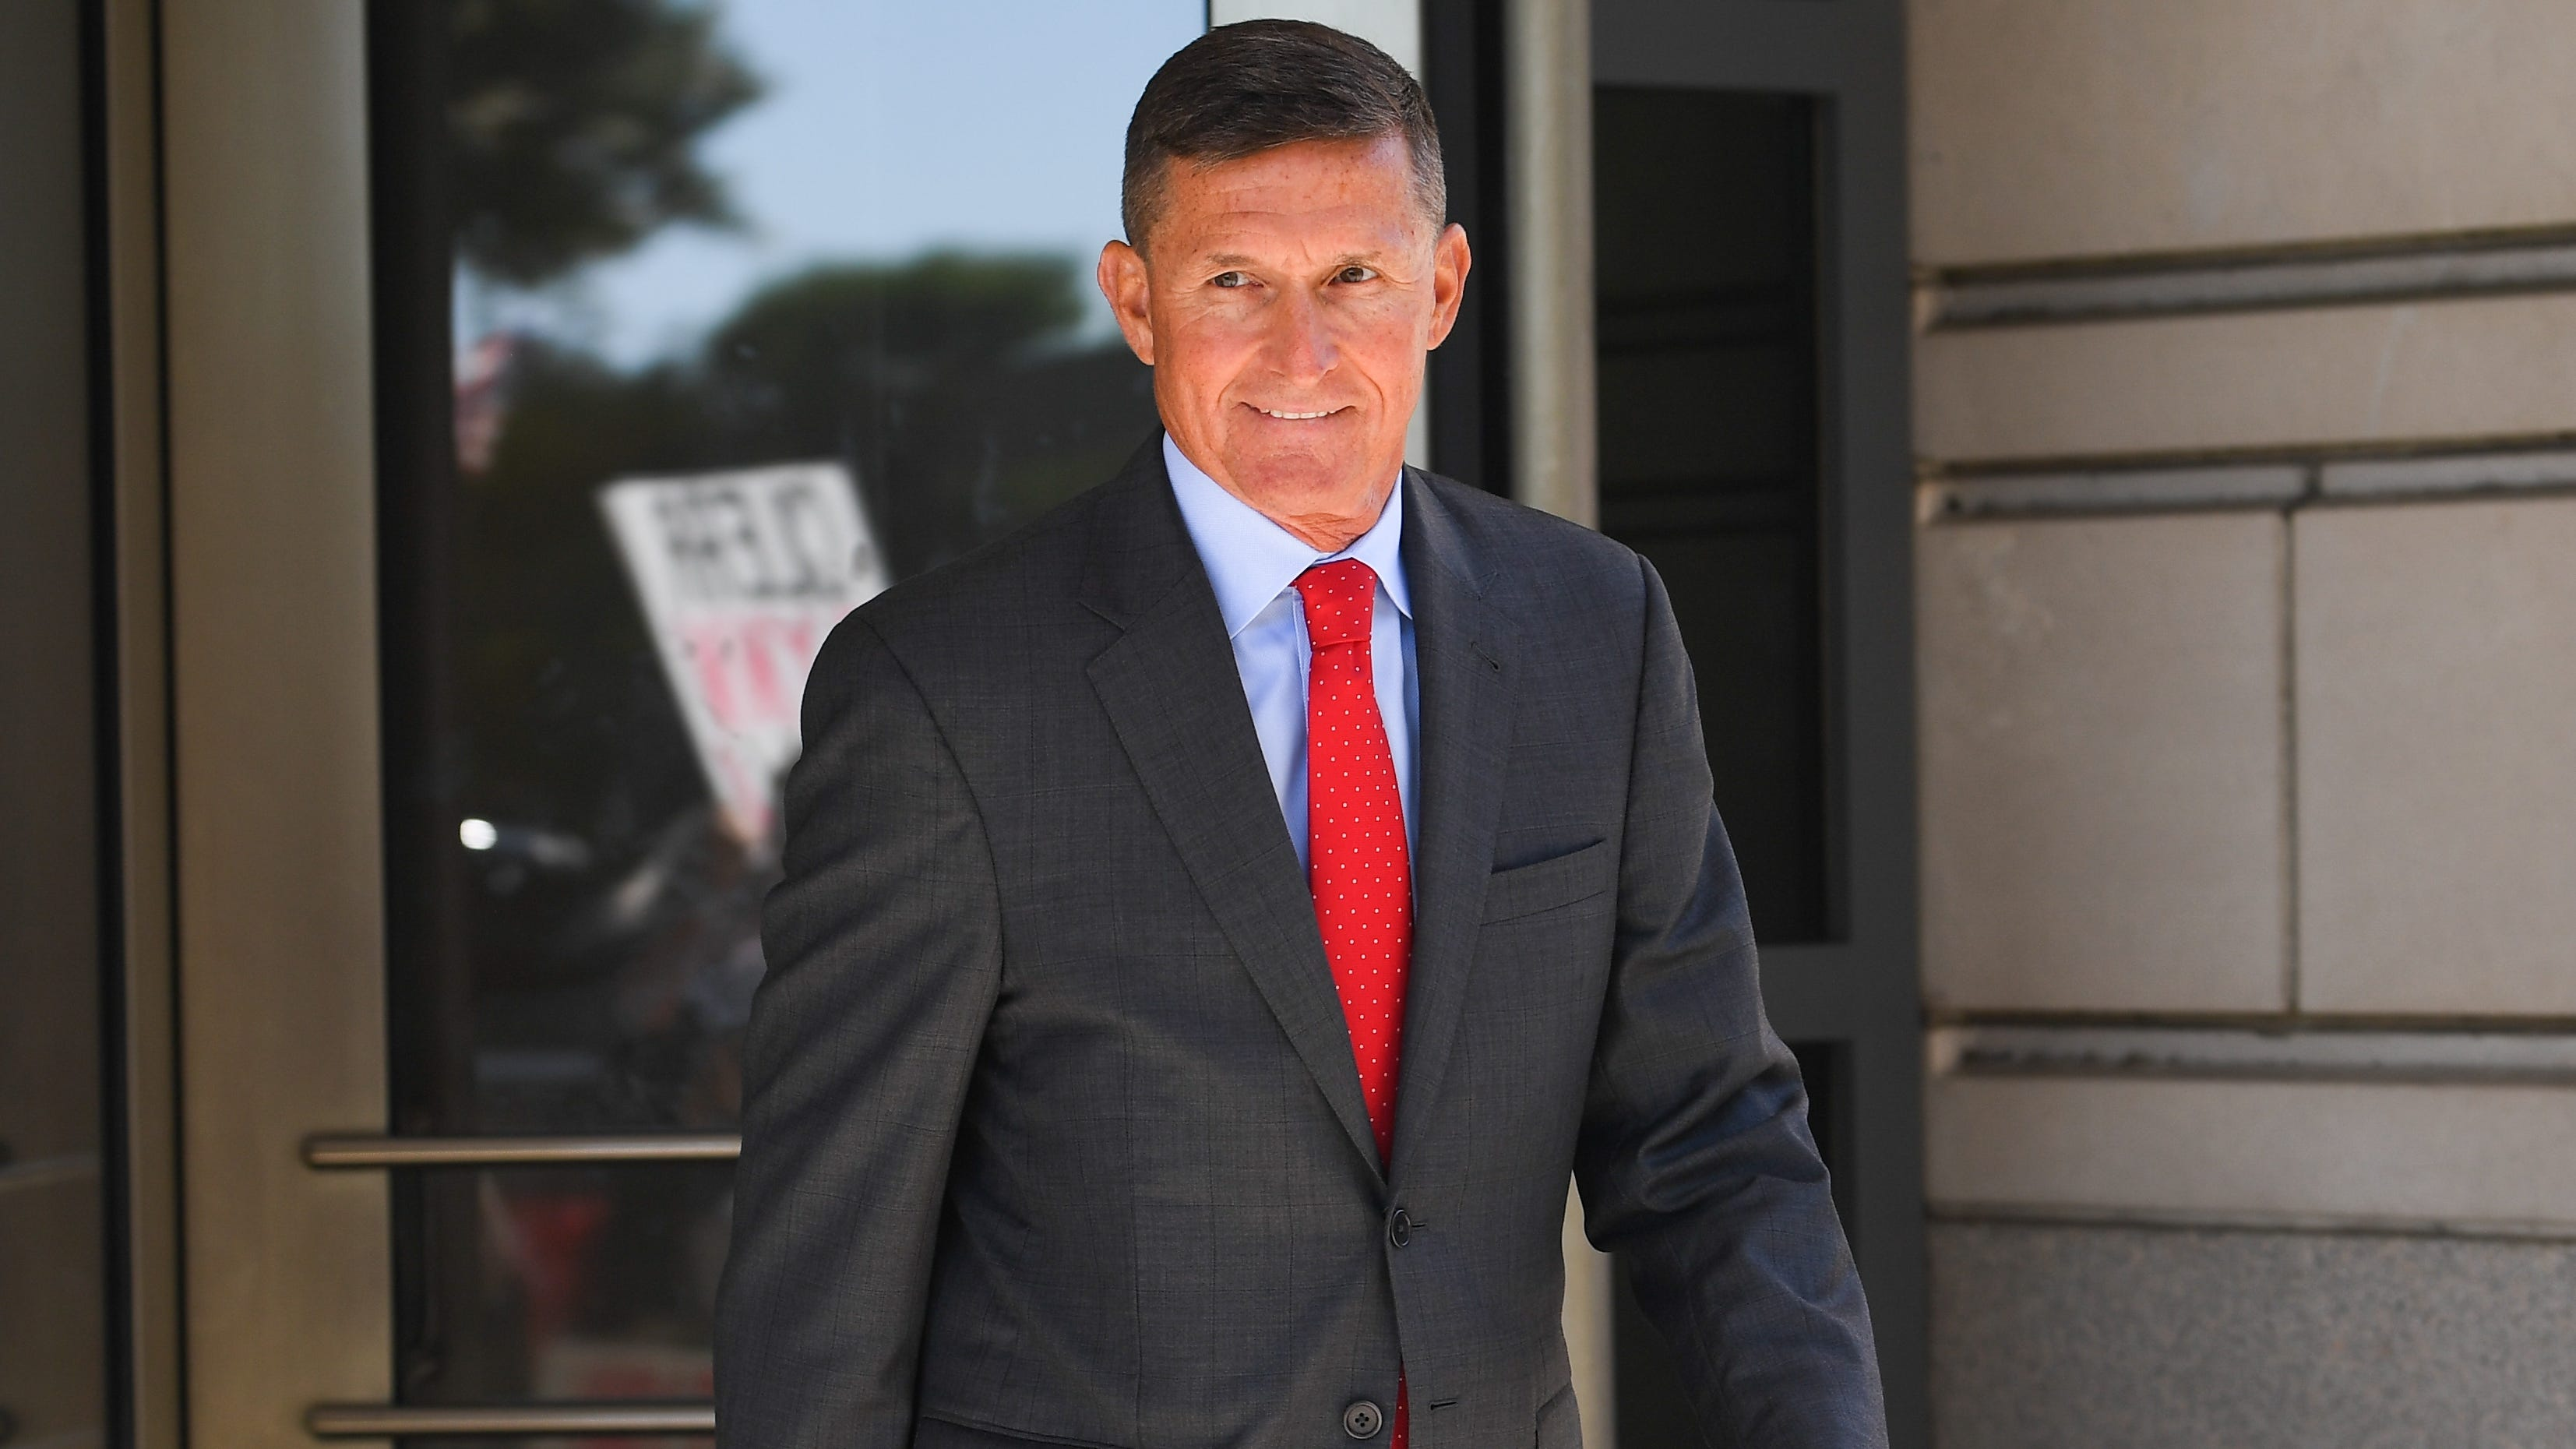 Former national security adviser Michael Flynn departs following court appearance at U.S. District Court for the District of Columbia.